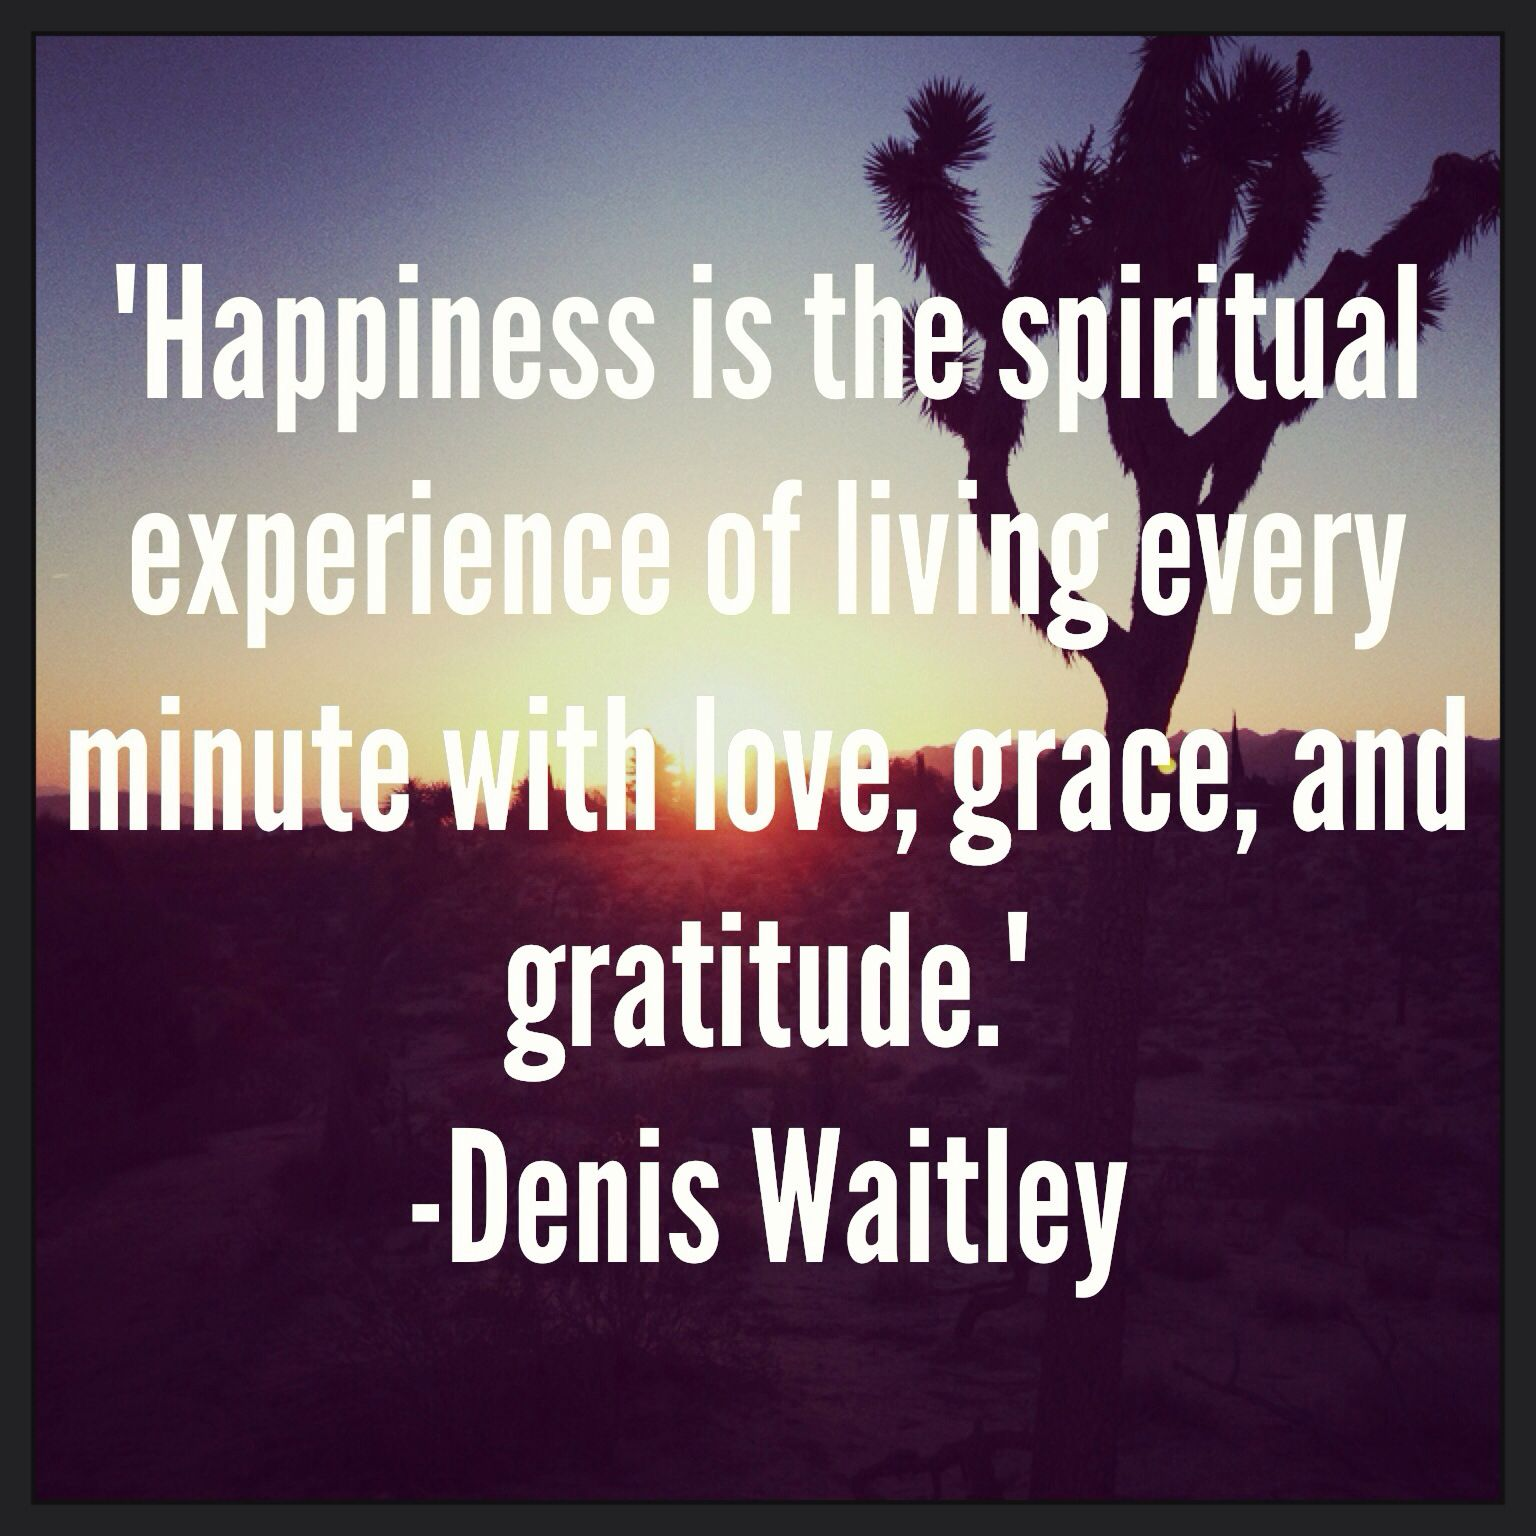 Quotes About Love And Happiness Happiness Spiritual Spirituality Love Grace Gratitude Wisdom